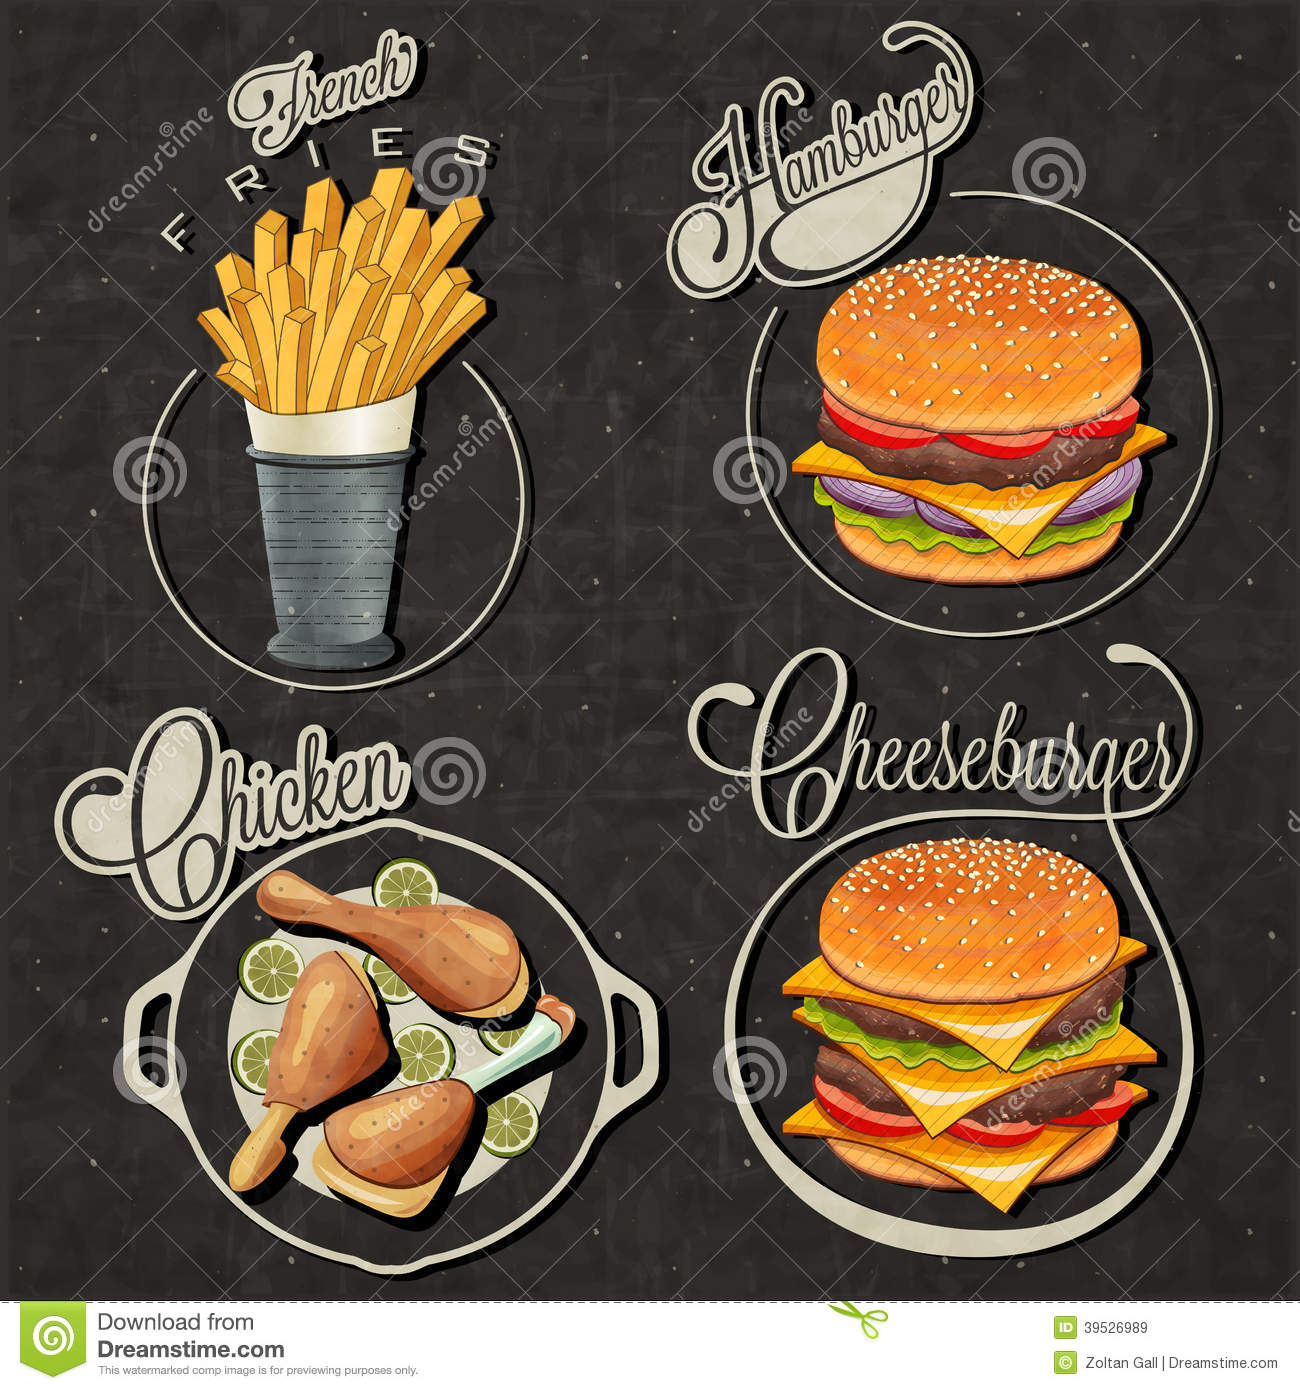 Retro vintage style fast food designs stock vector Cuisine style retro